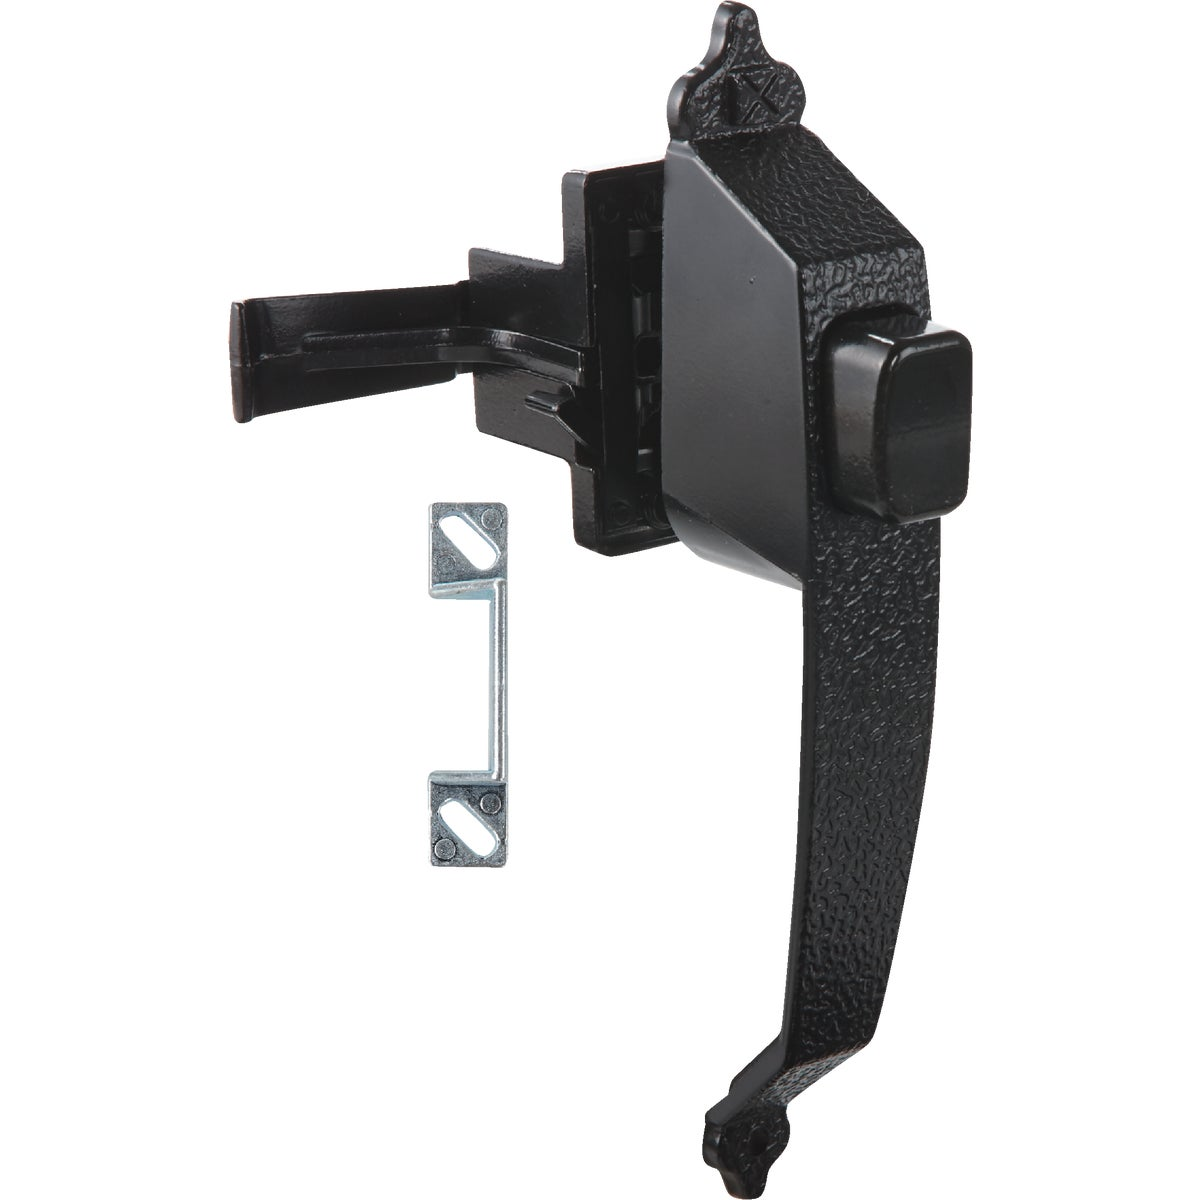 COLNIAL PUSHBUTTON LATCH - VC333BL by Hampton Prod Intl